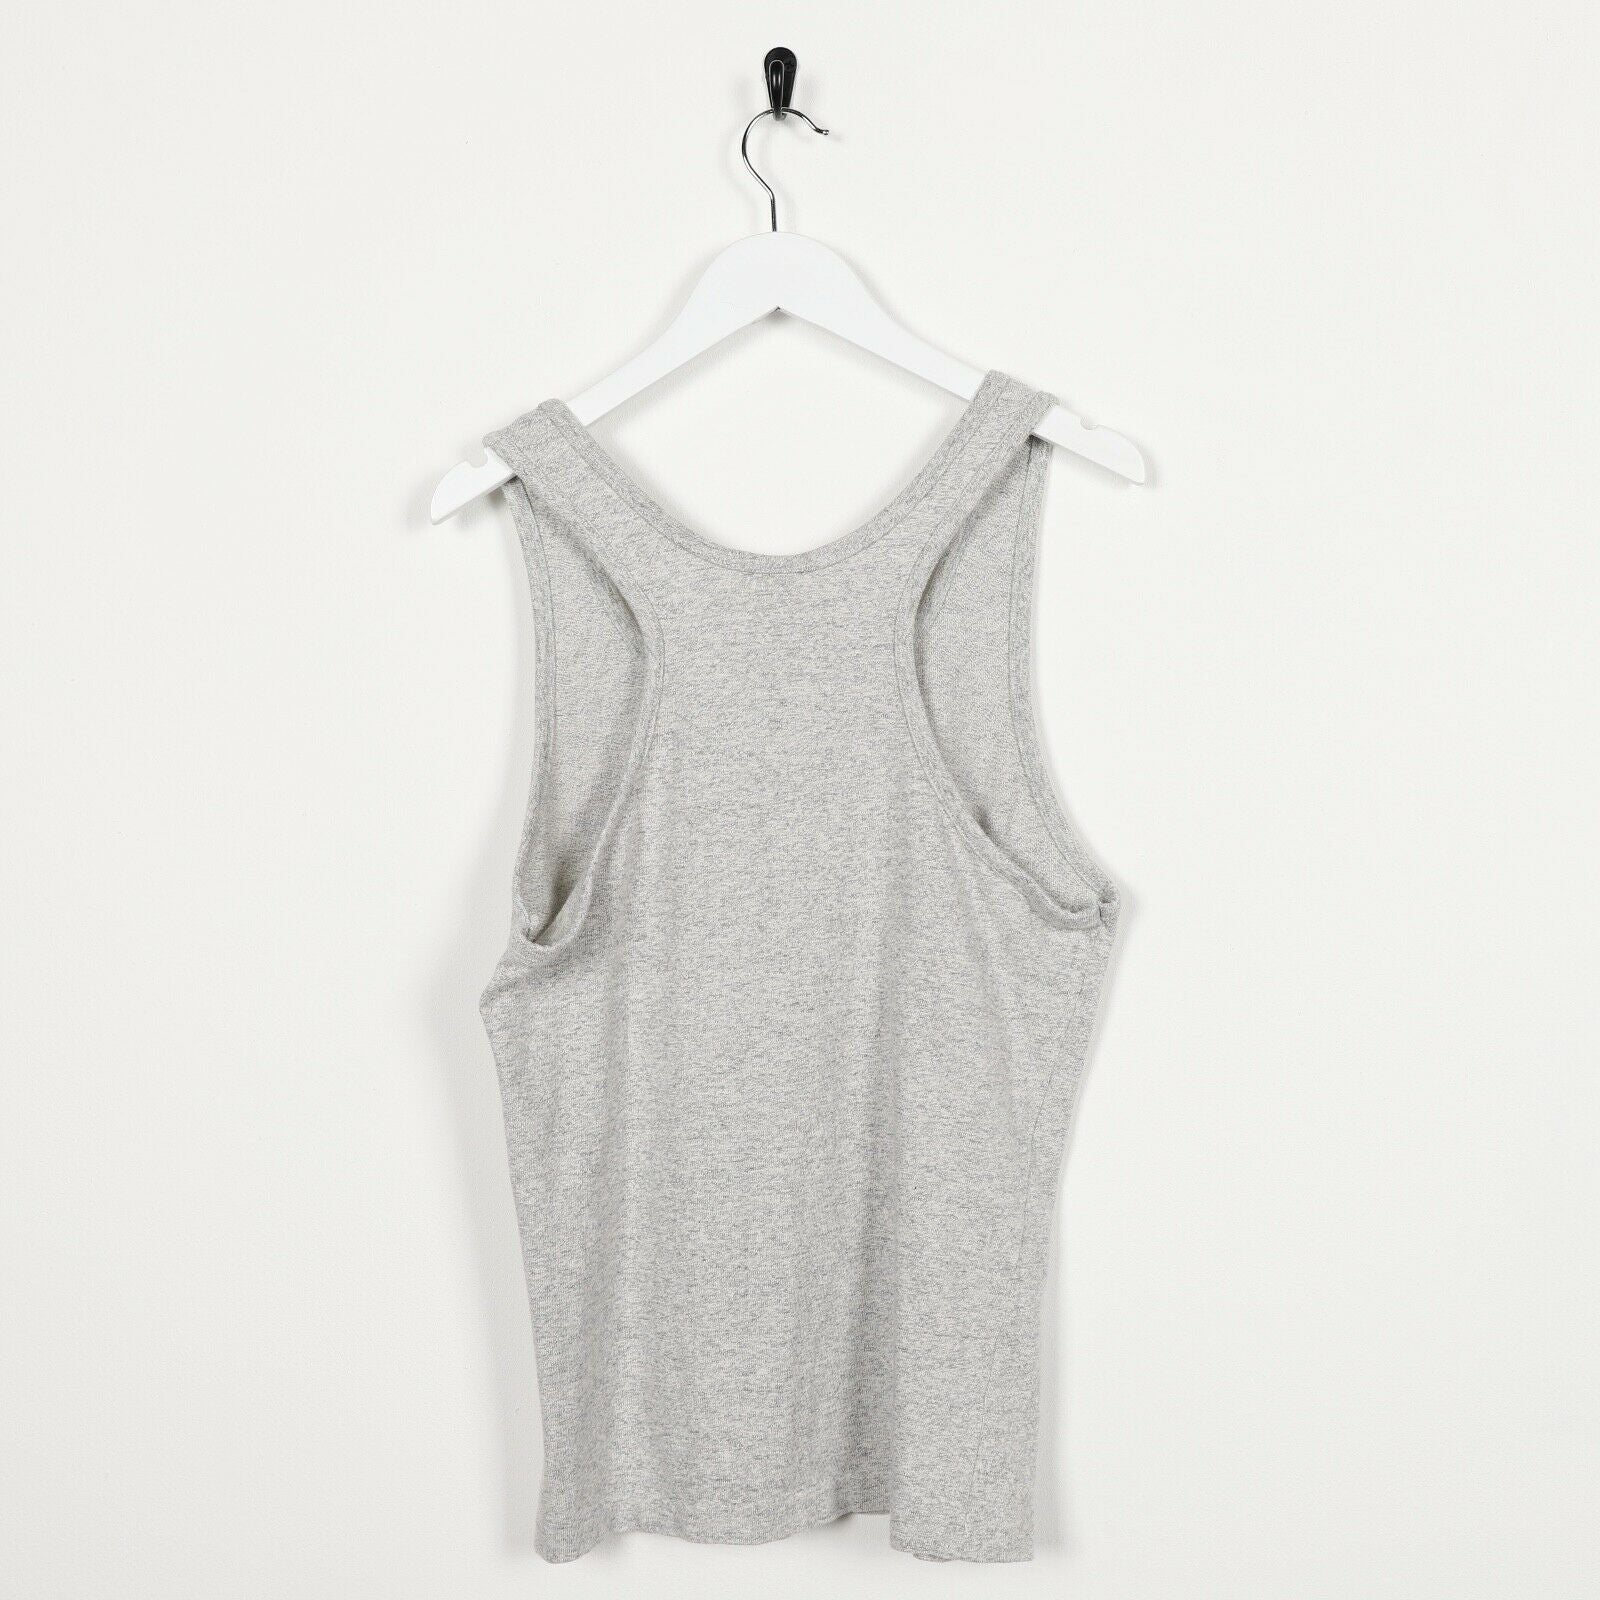 Vintage CHAMPION Spell Out Sleeveless T Shirt Tee Vest Grey | Small S